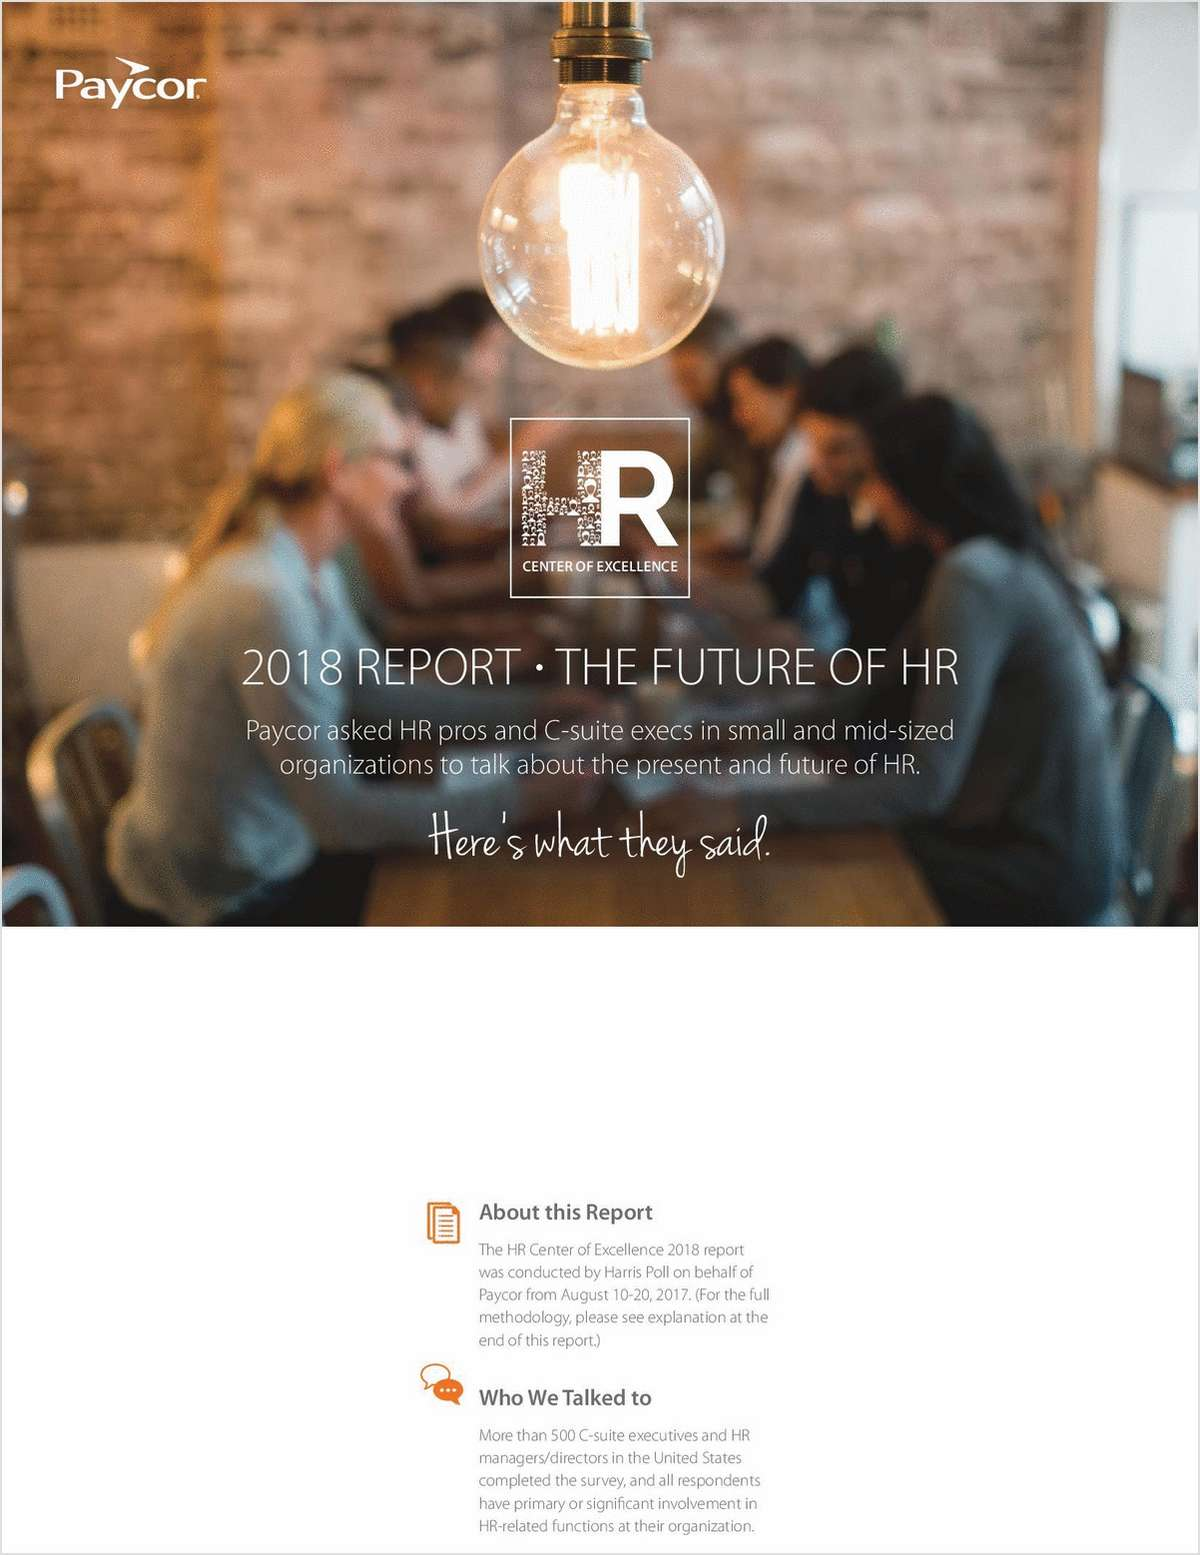 Interested in What HR Will Look Like in 2022?